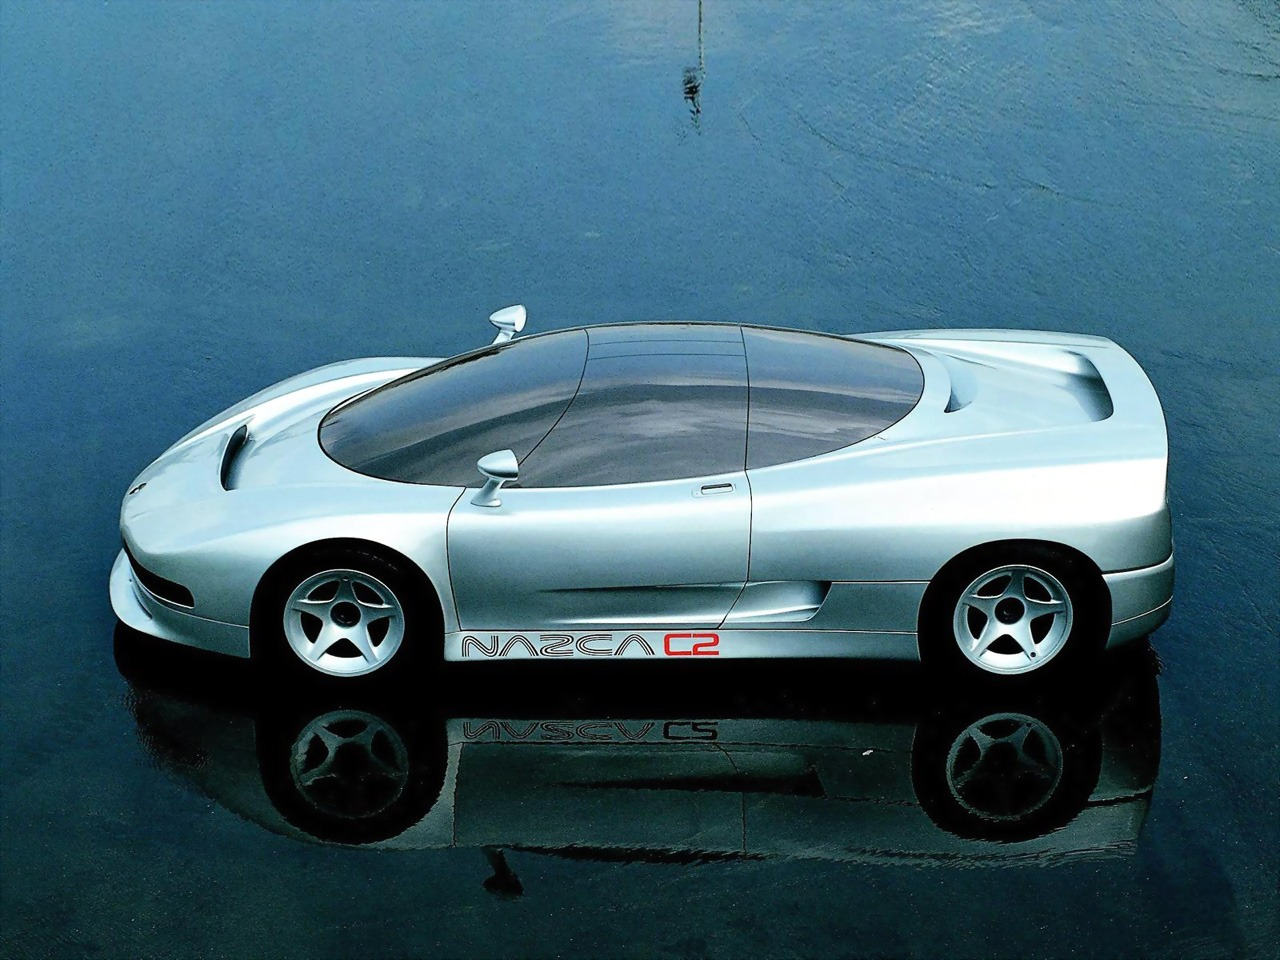 BMW Nazca C2 Italdesign Concept Car